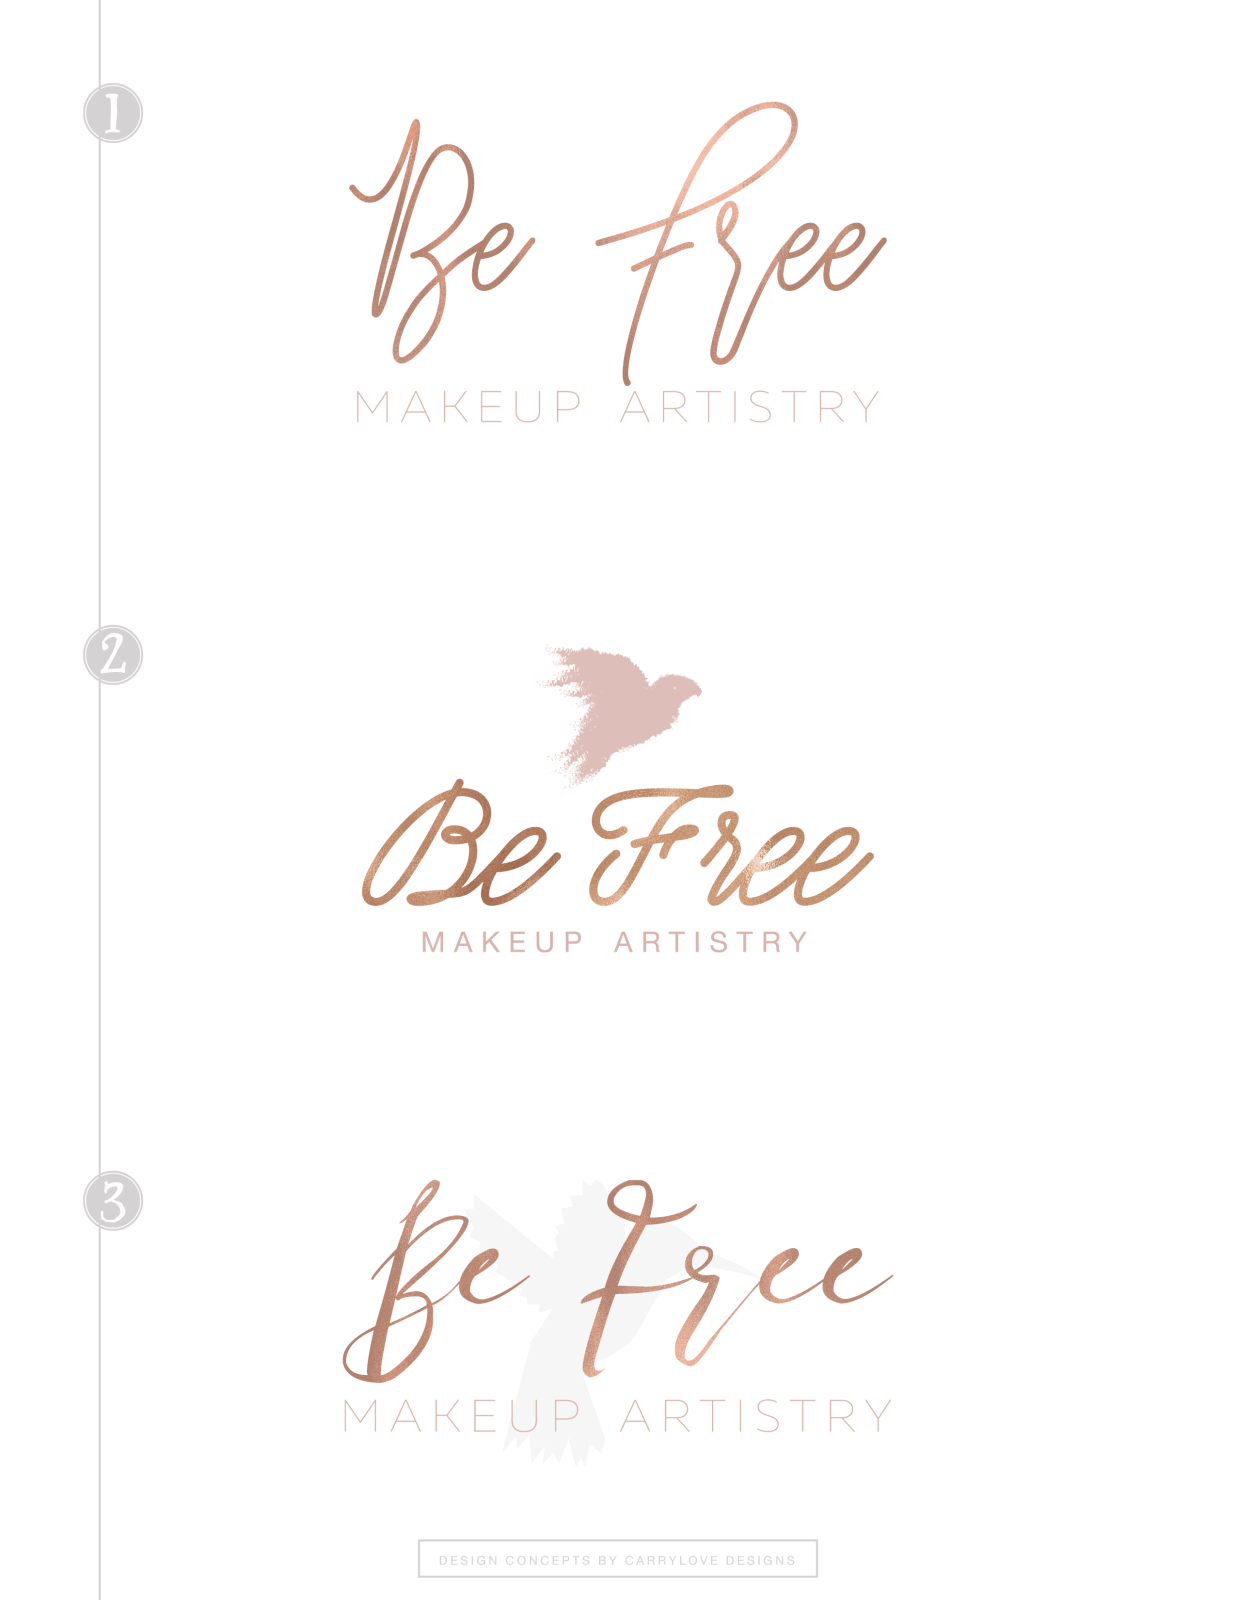 Be Free Makeup Artistry Logo Concepts from Carrylove Designs